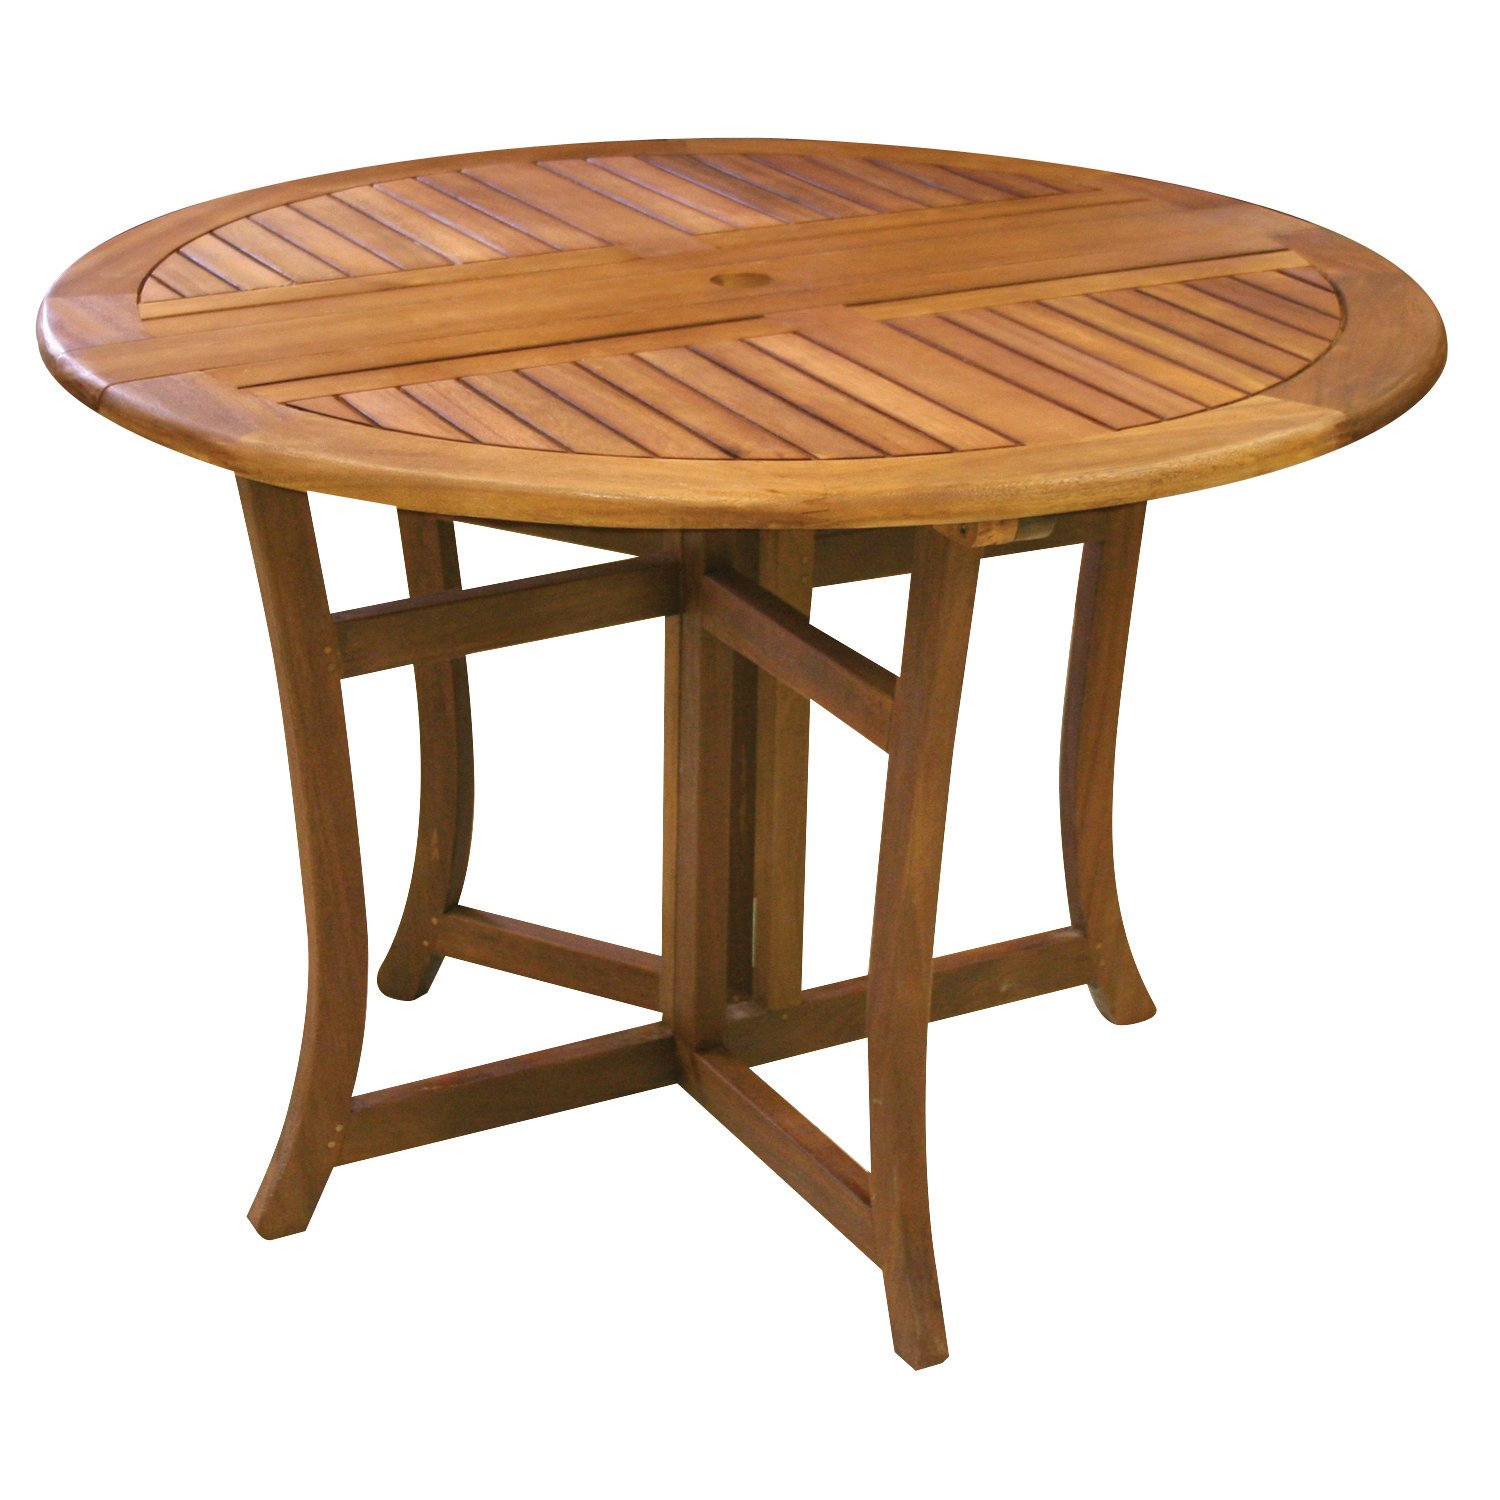 Amazon eucalyptus 43 inch round folding deck table patio amazon eucalyptus 43 inch round folding deck table patio dining tables garden outdoor watchthetrailerfo